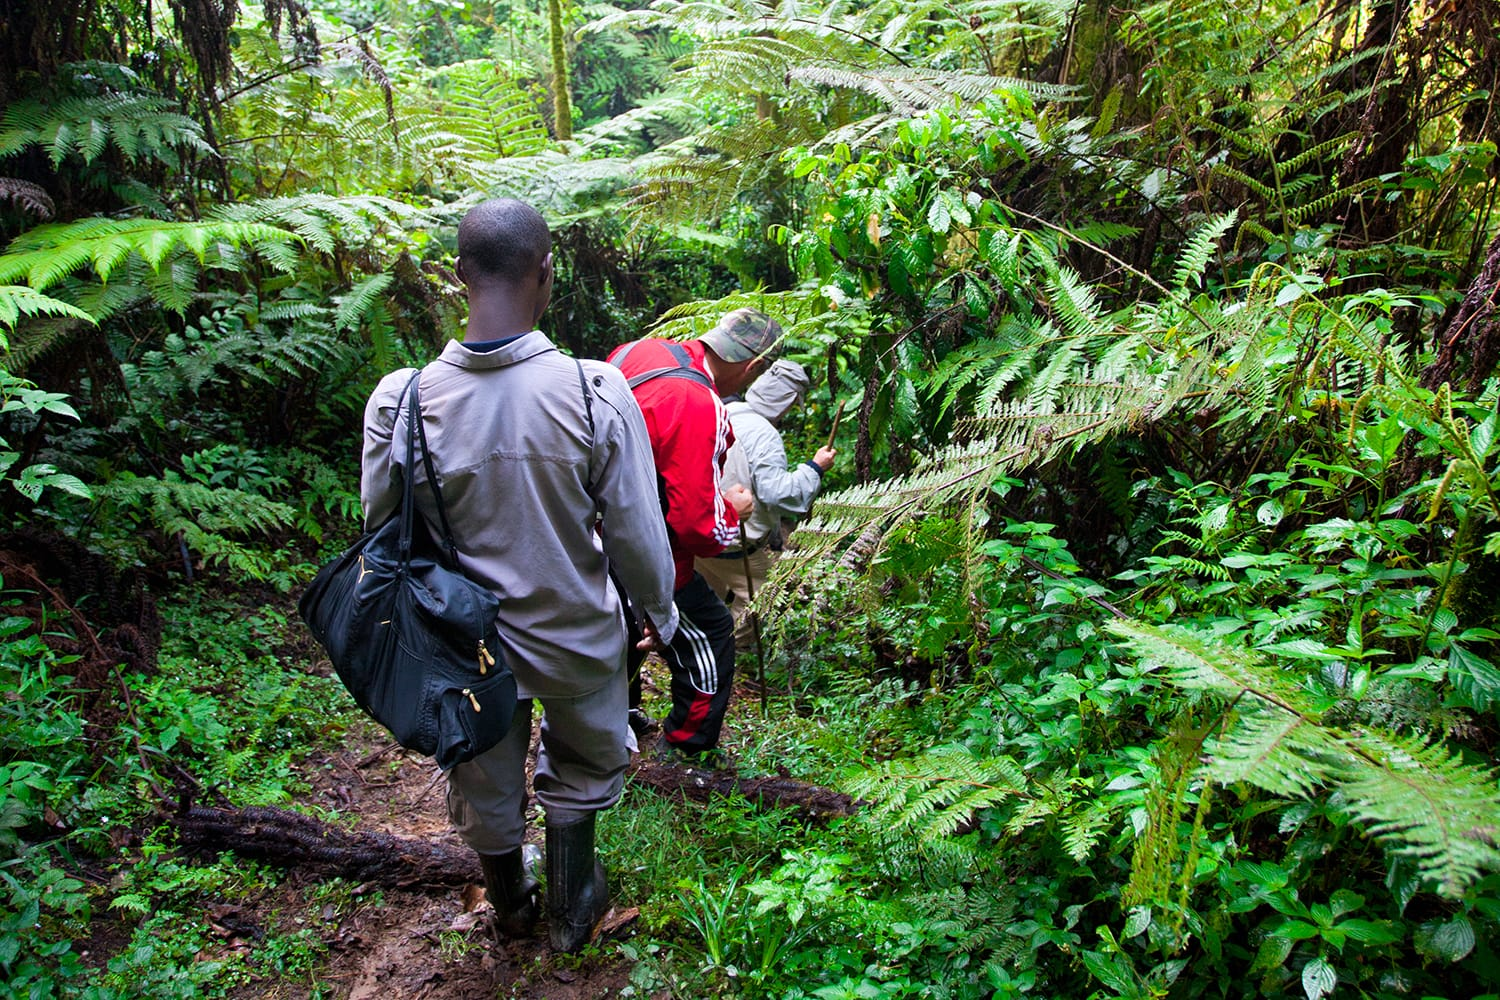 Unidentified tourists on gorilla trekking in the African rainforest in Bwindi Impenetrable Forest National Park, at the borders of Uganda, Congo and Rwanda